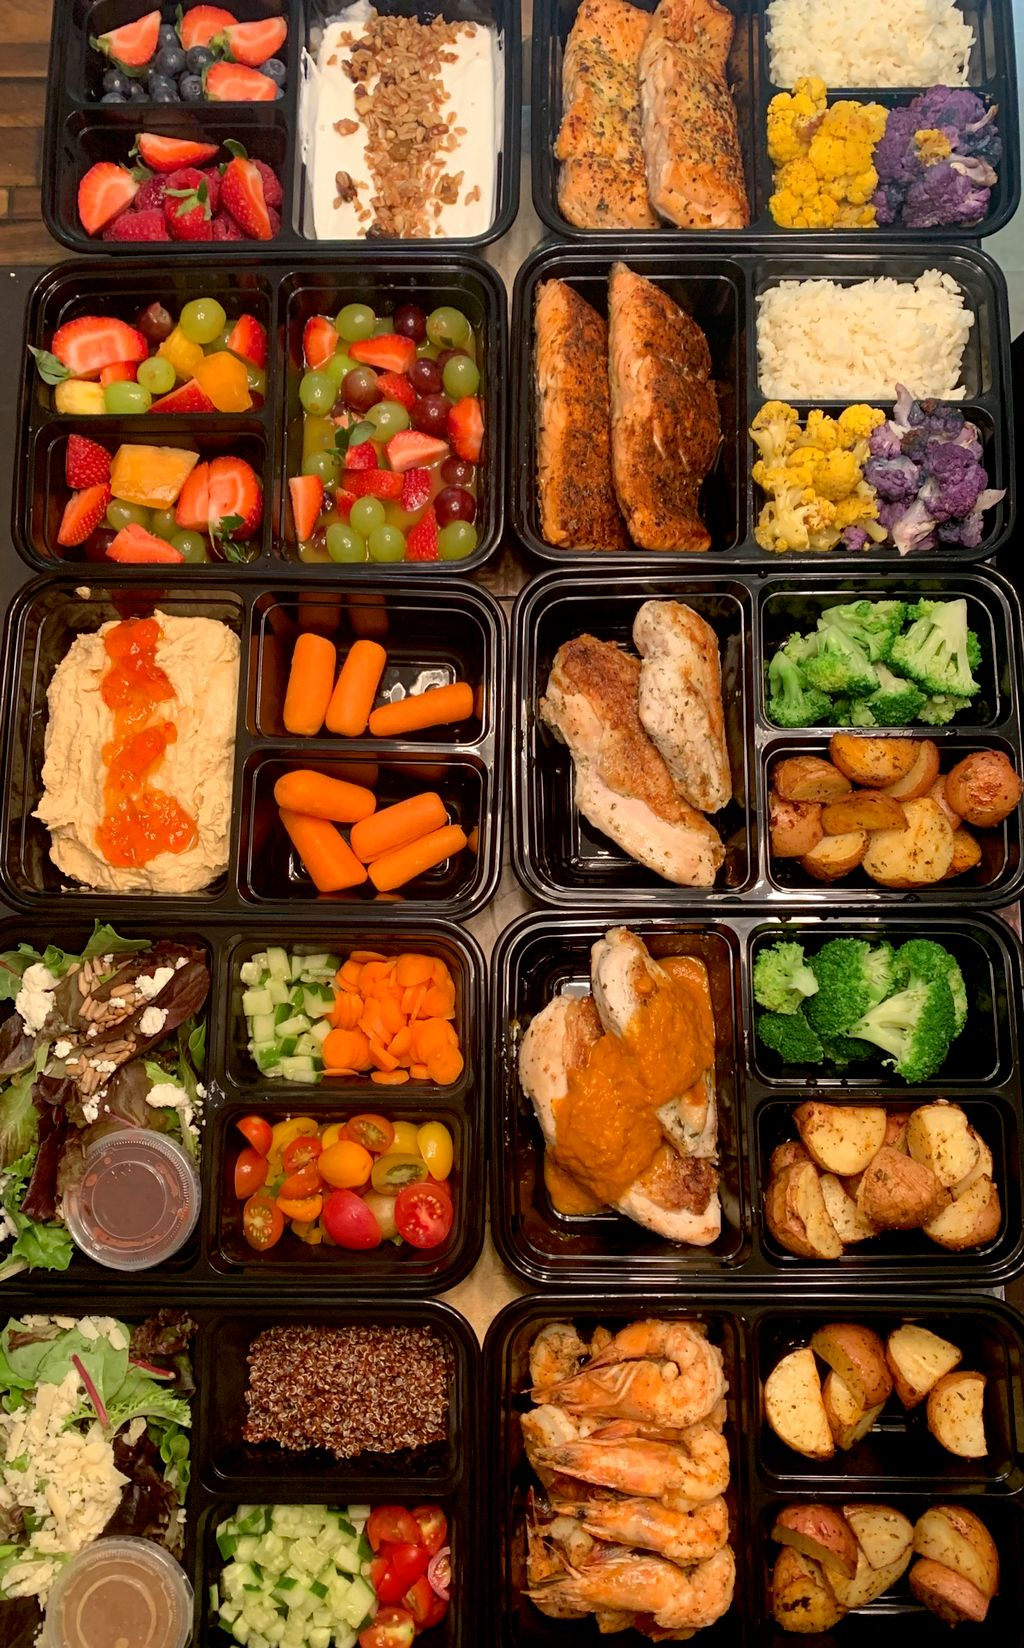 Meal Prep-Single Person Plan- Weekly Cost